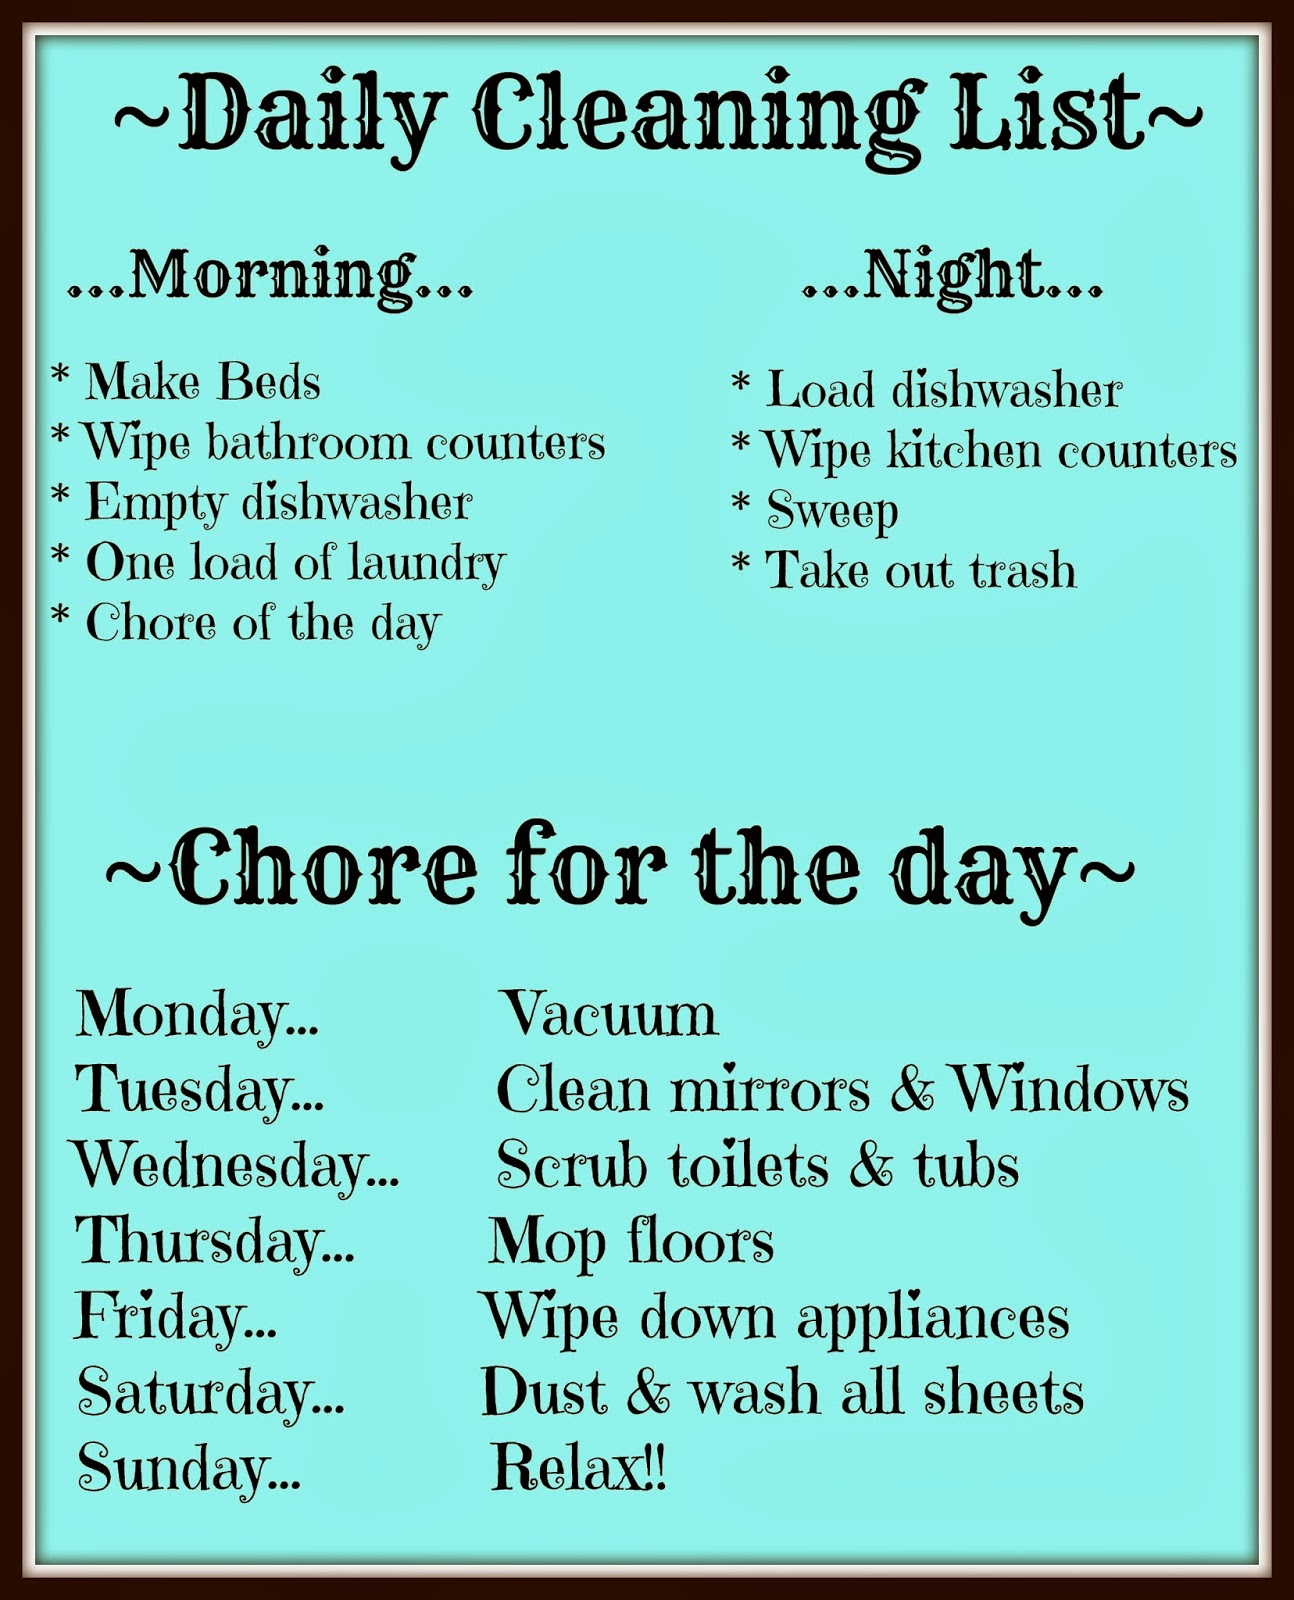 Simply Everthing I Love   : FREE Daily Cleaning List